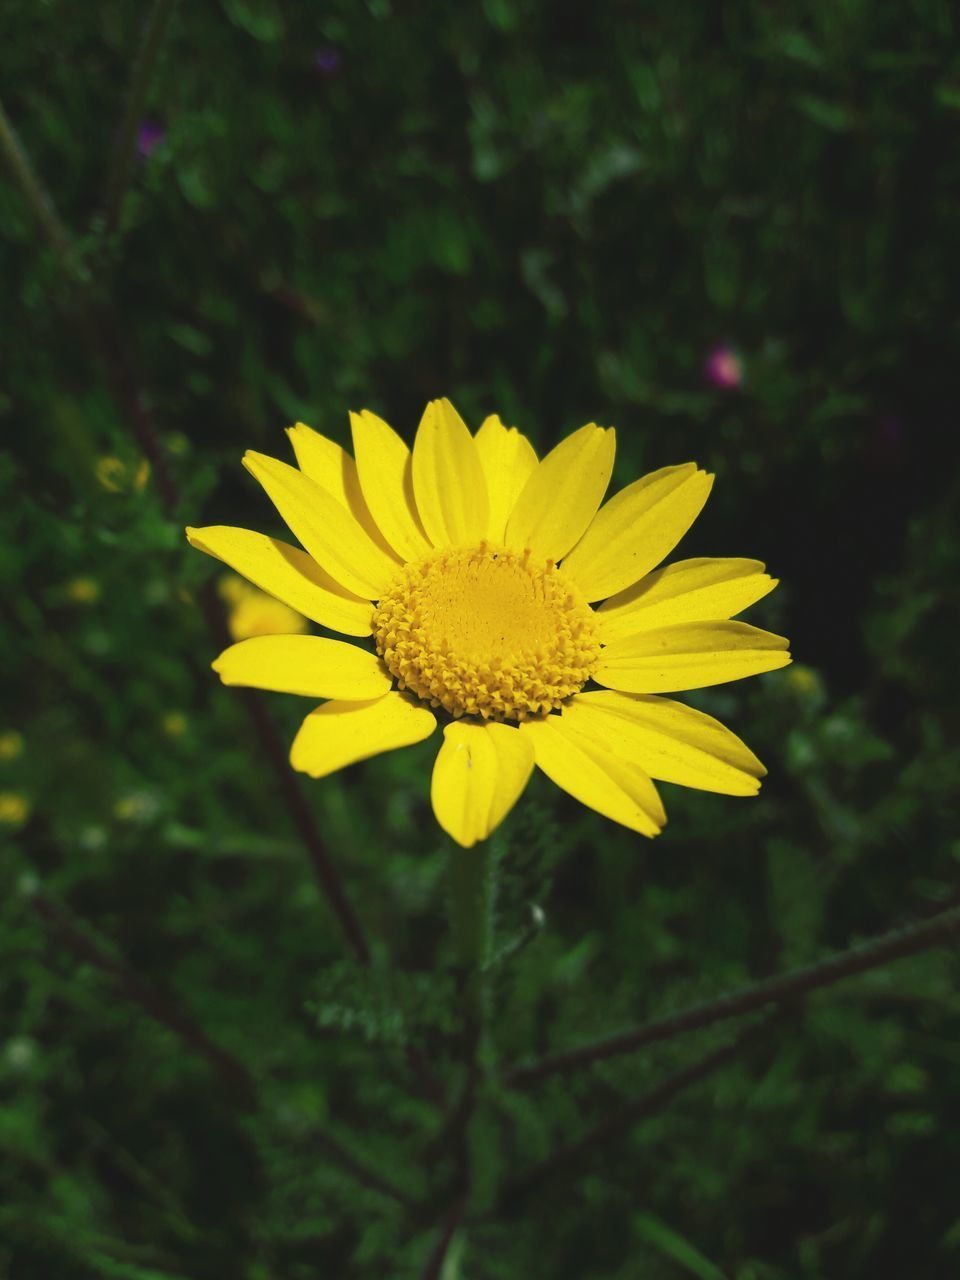 flower, yellow, beauty in nature, fragility, nature, petal, growth, freshness, flower head, plant, blooming, pollen, outdoors, no people, insect, close-up, animal themes, day, pollination